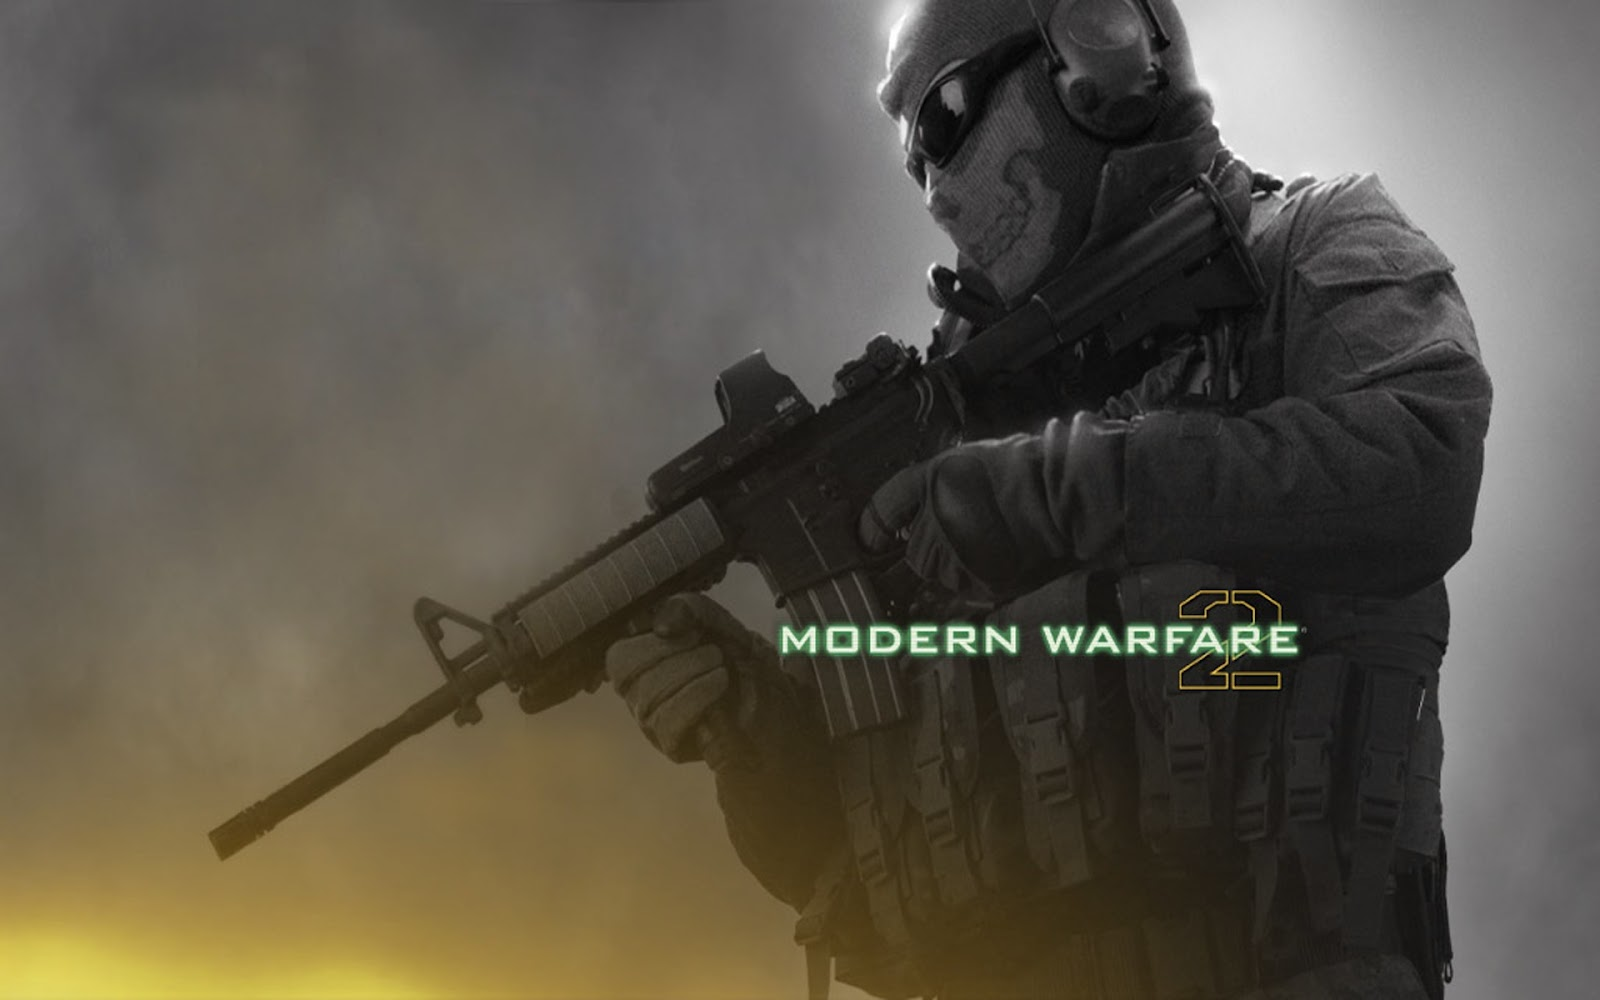 wallpaper background infinity ward fps first person shooter img image 1600x1000